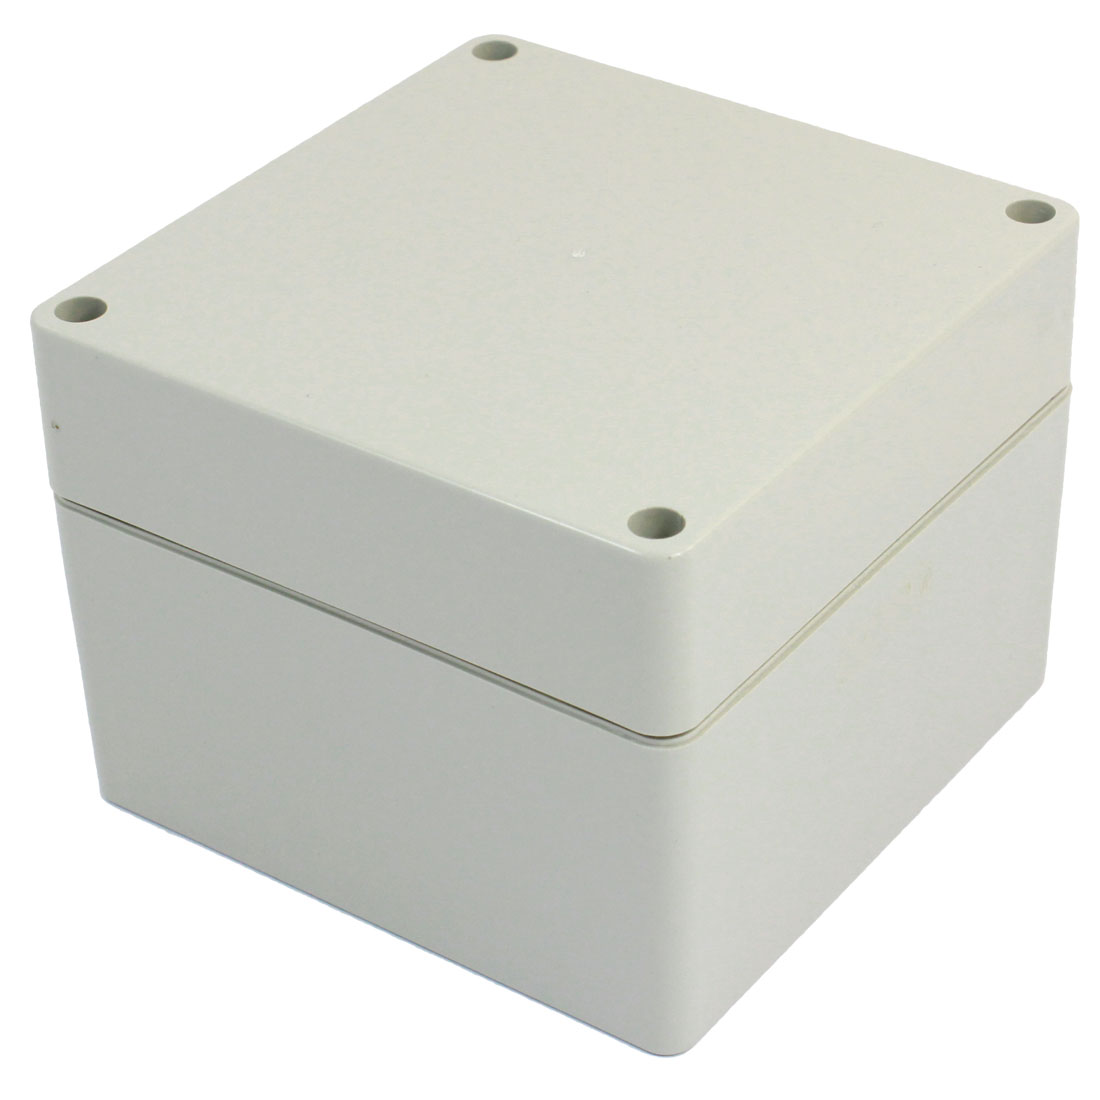 Rectangular Waterproof Plastic DIY Junction Box Case 115 x115 x 88mm